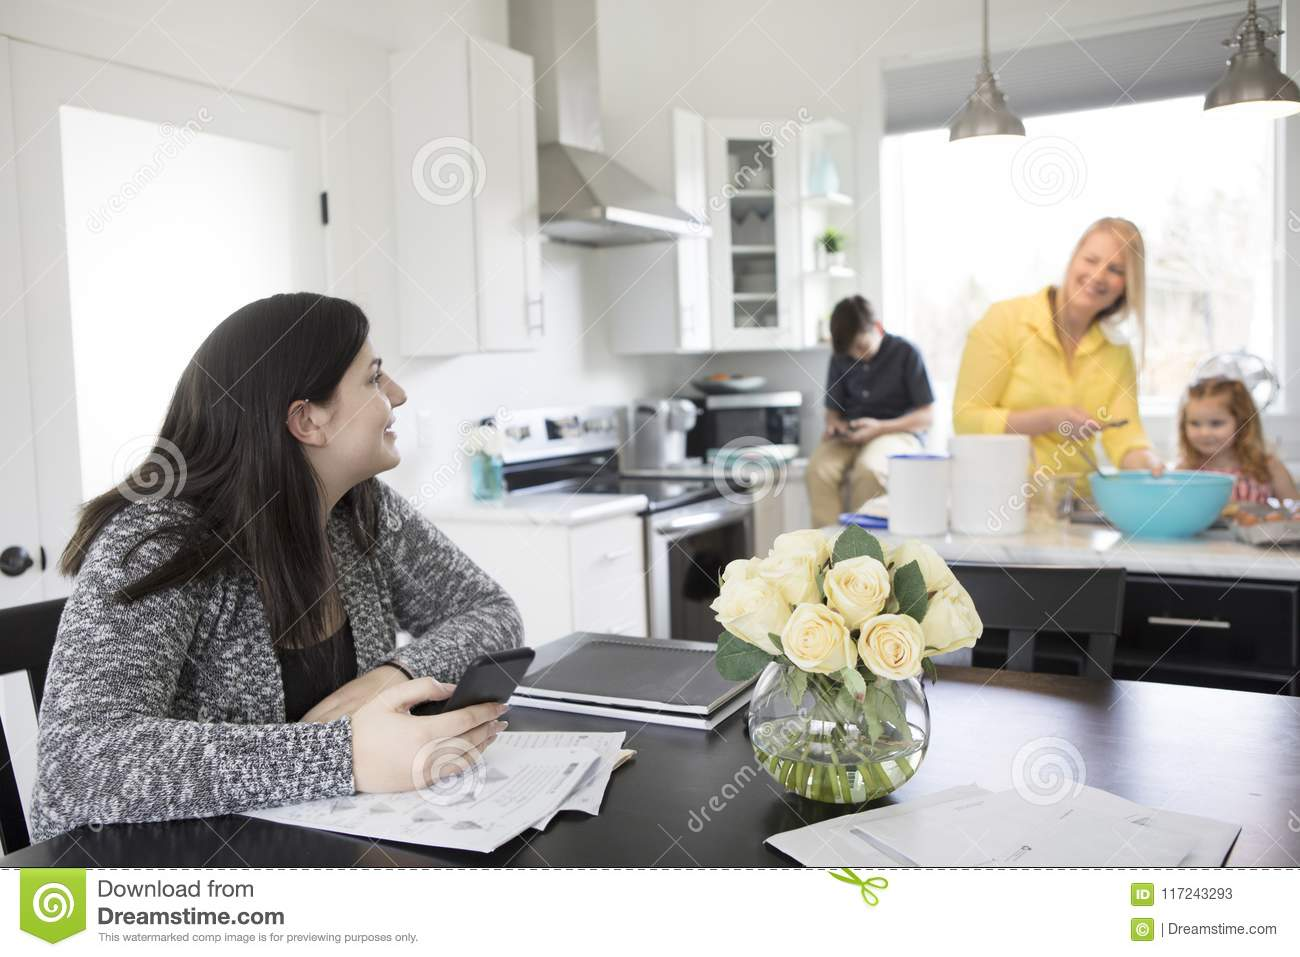 A family baking and spending time together in their modern kitchen.